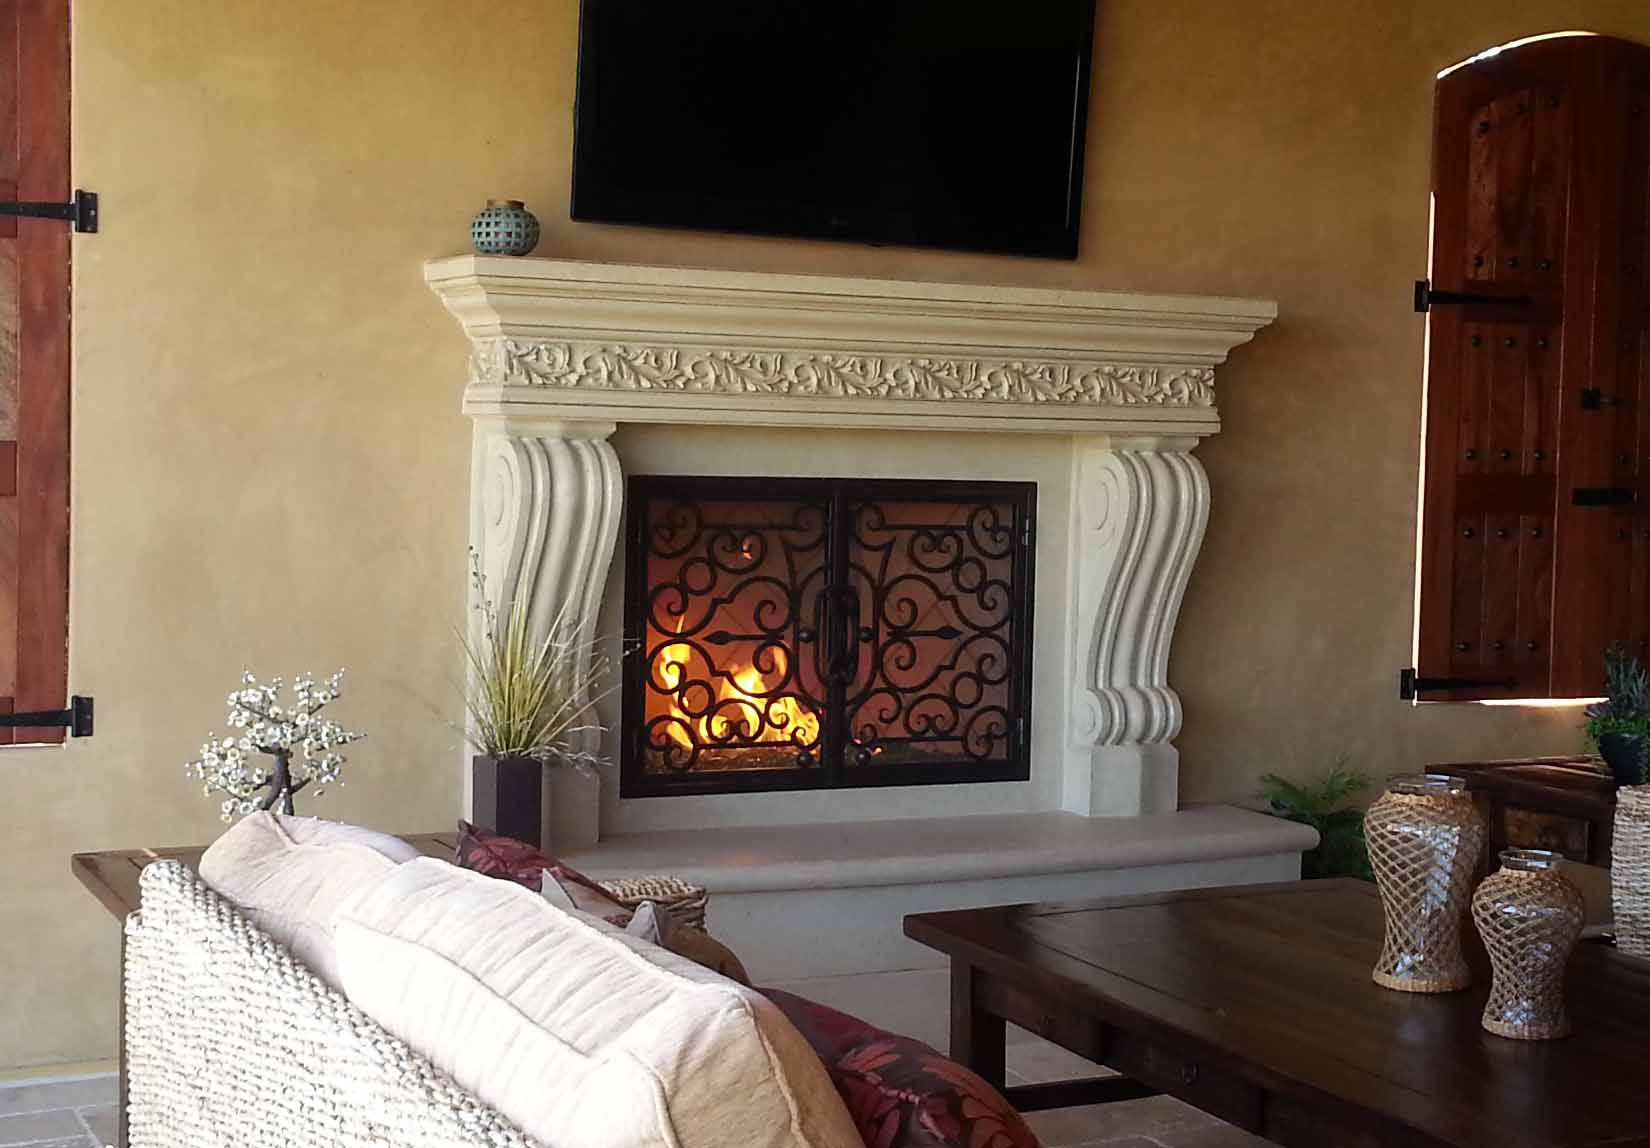 San Diego Fireplaces and fireplaces in San Diego CA by Mantel Depot. To see more beautiful fireplaces in San Diego